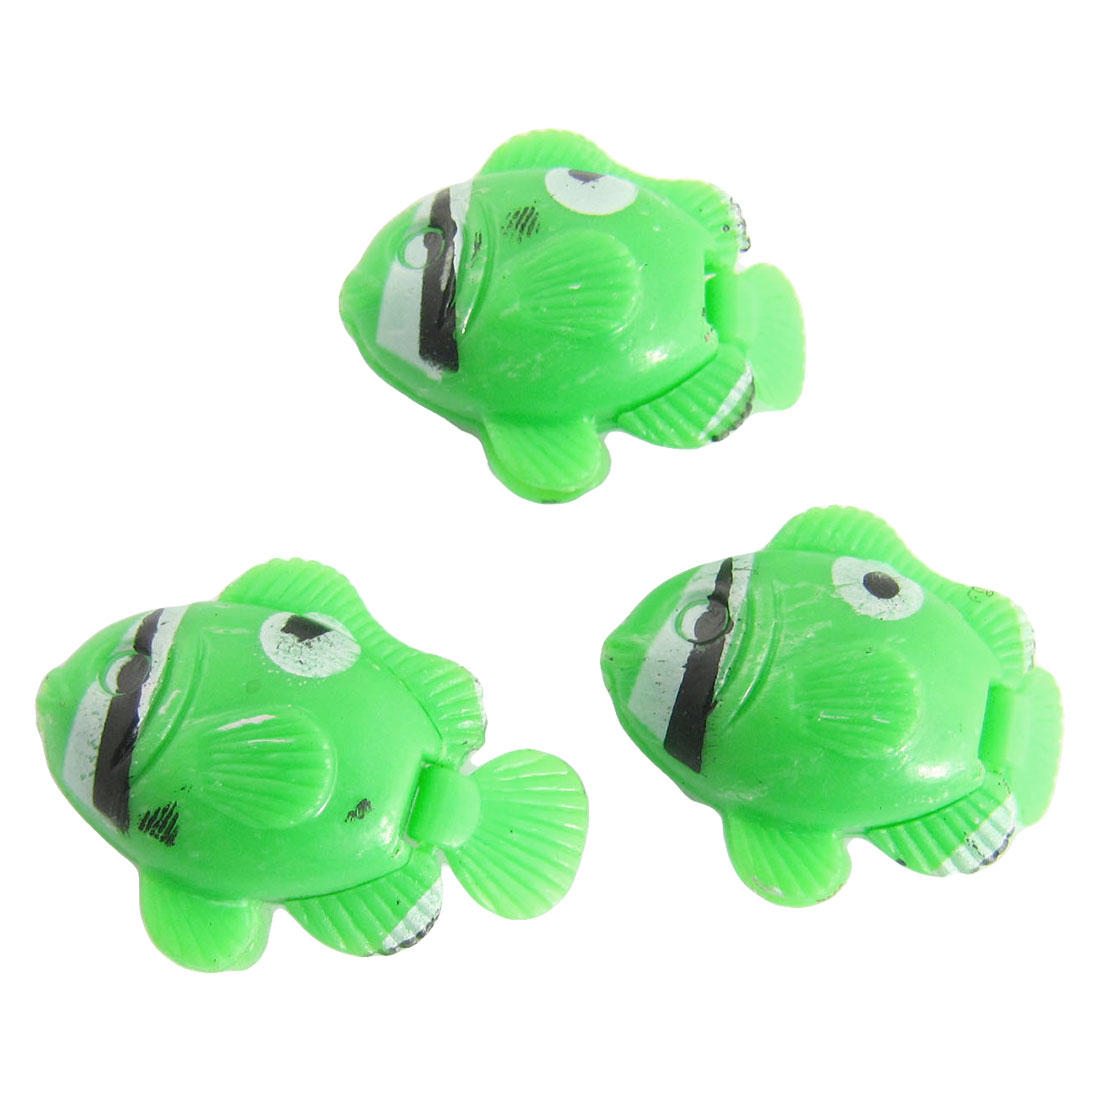 Green Artifical Wiggling Tail Fish Aquarium Decor Ornament 3 Pcs